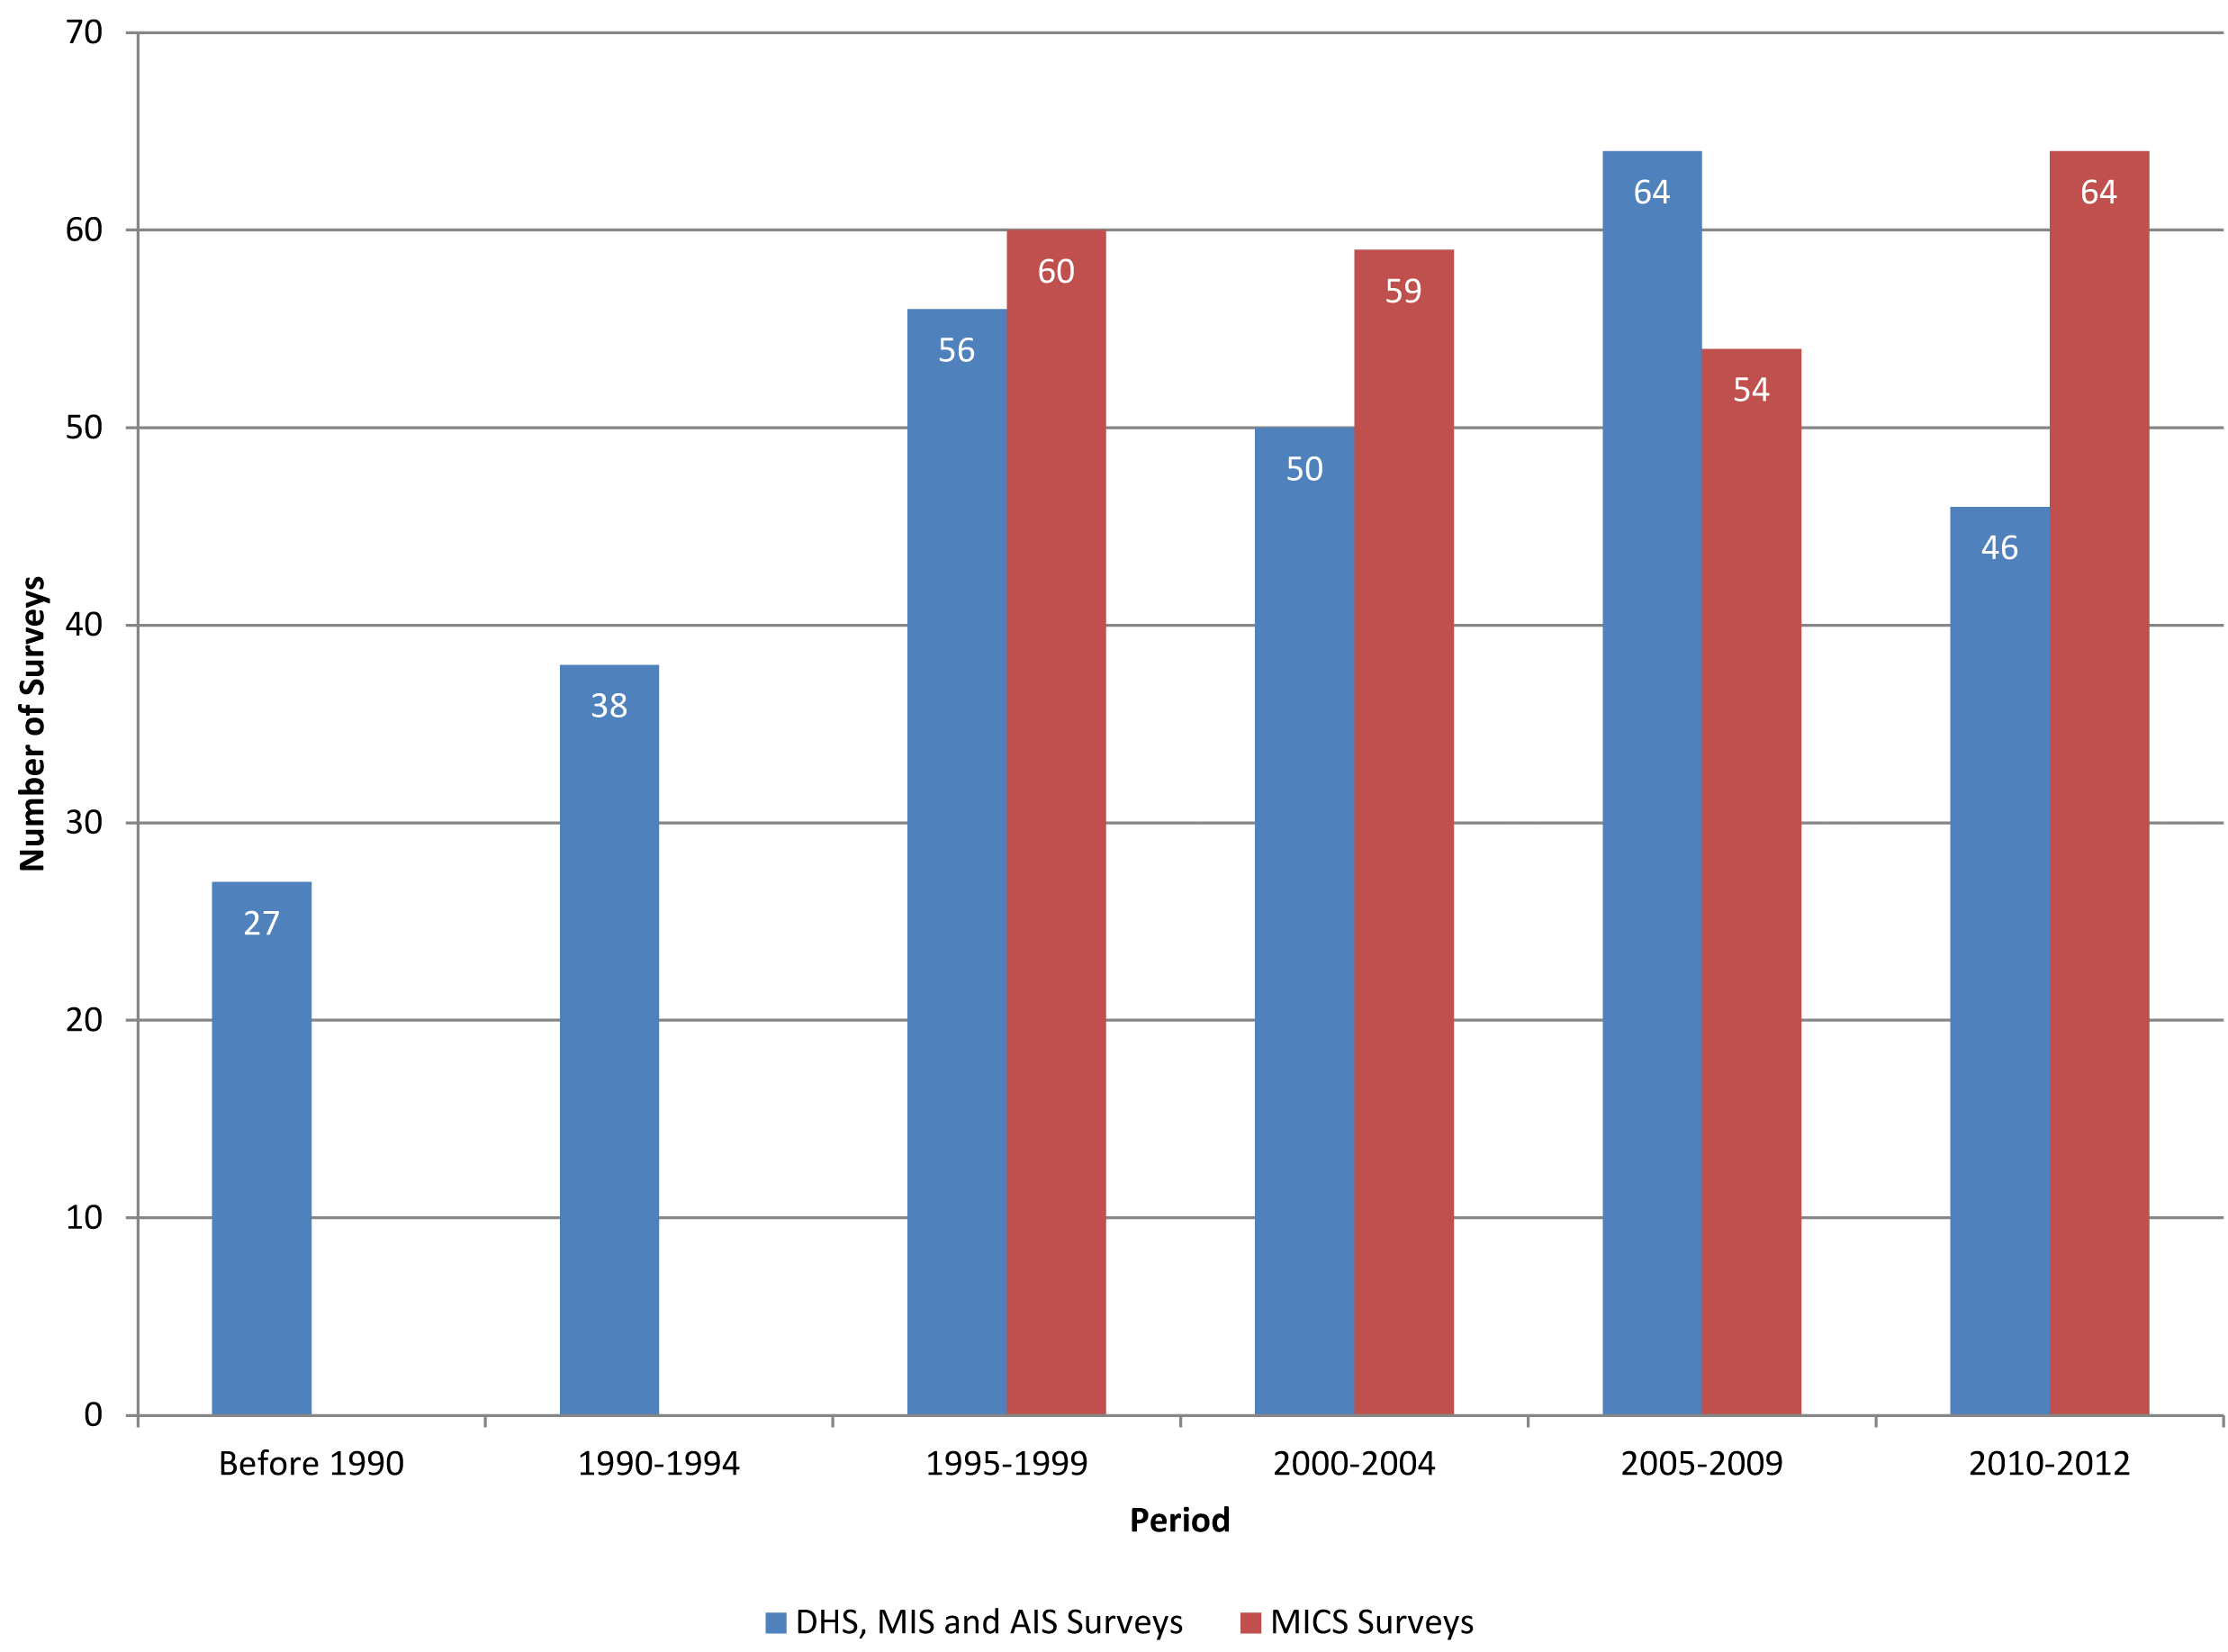 Number of DHS and MICS surveys by year.